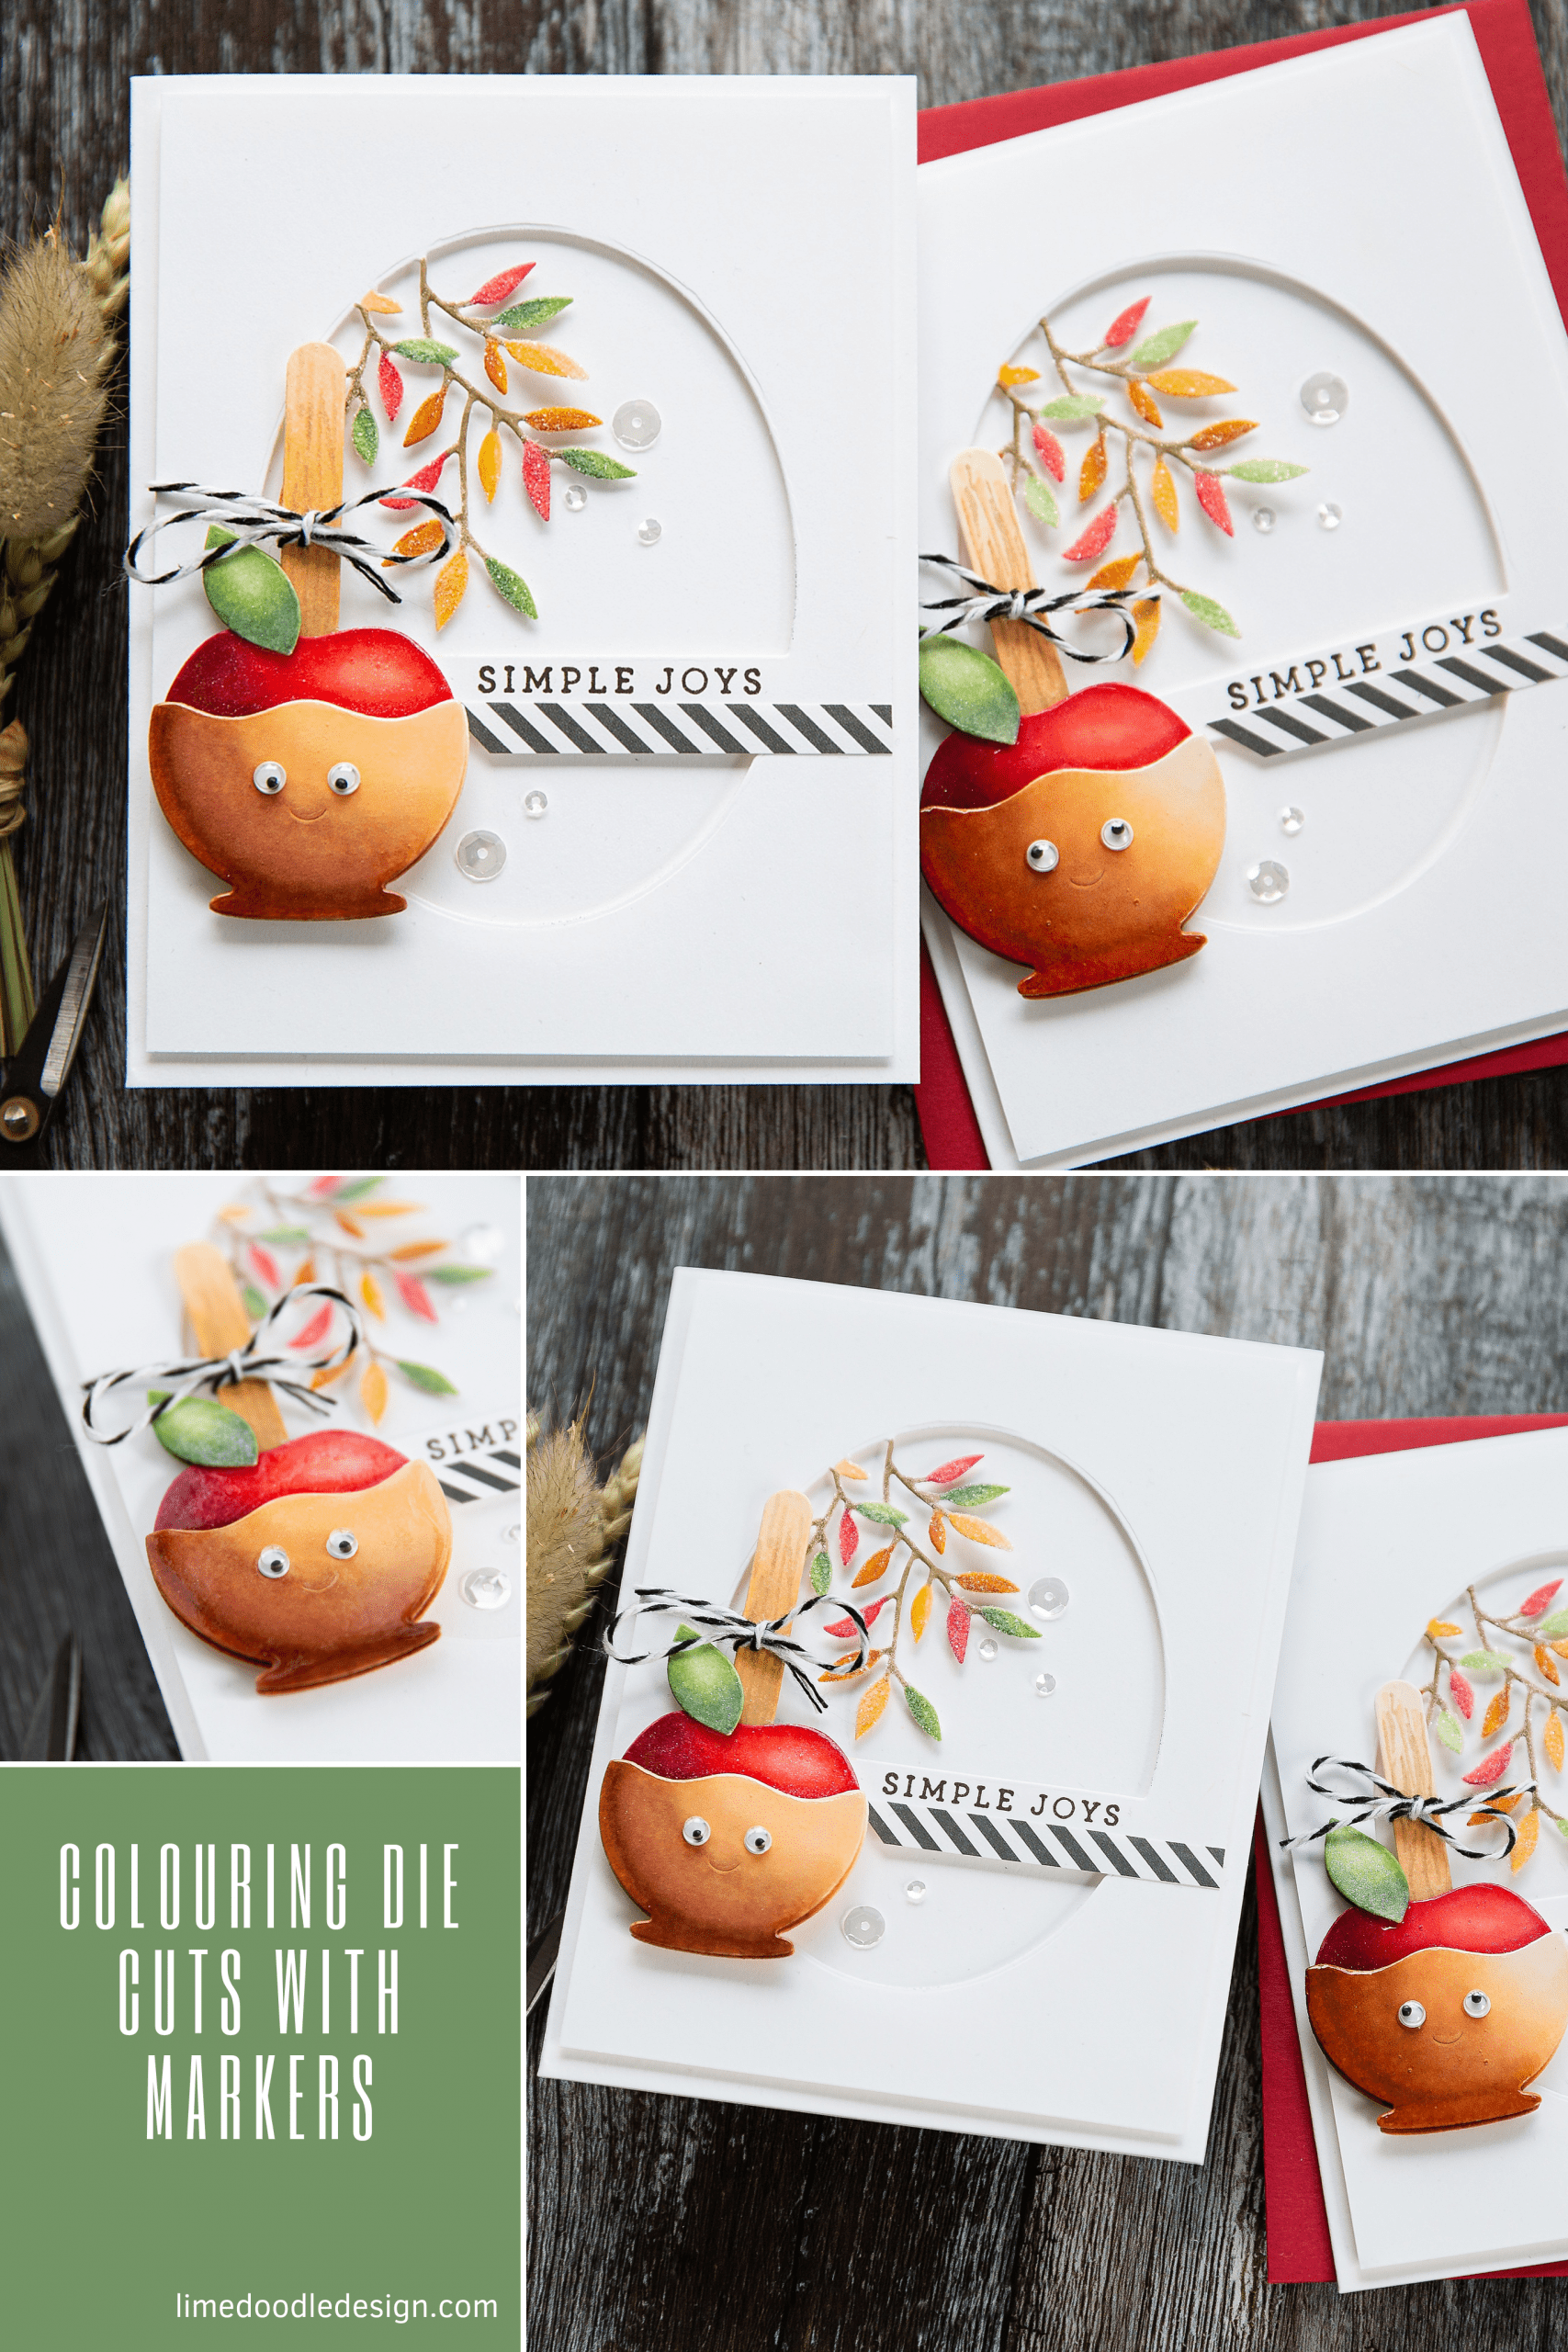 Colouring autumn die cuts with markers. Handmade caramel apple card by Debby Hughes using supplies from Simon Says Stamp.